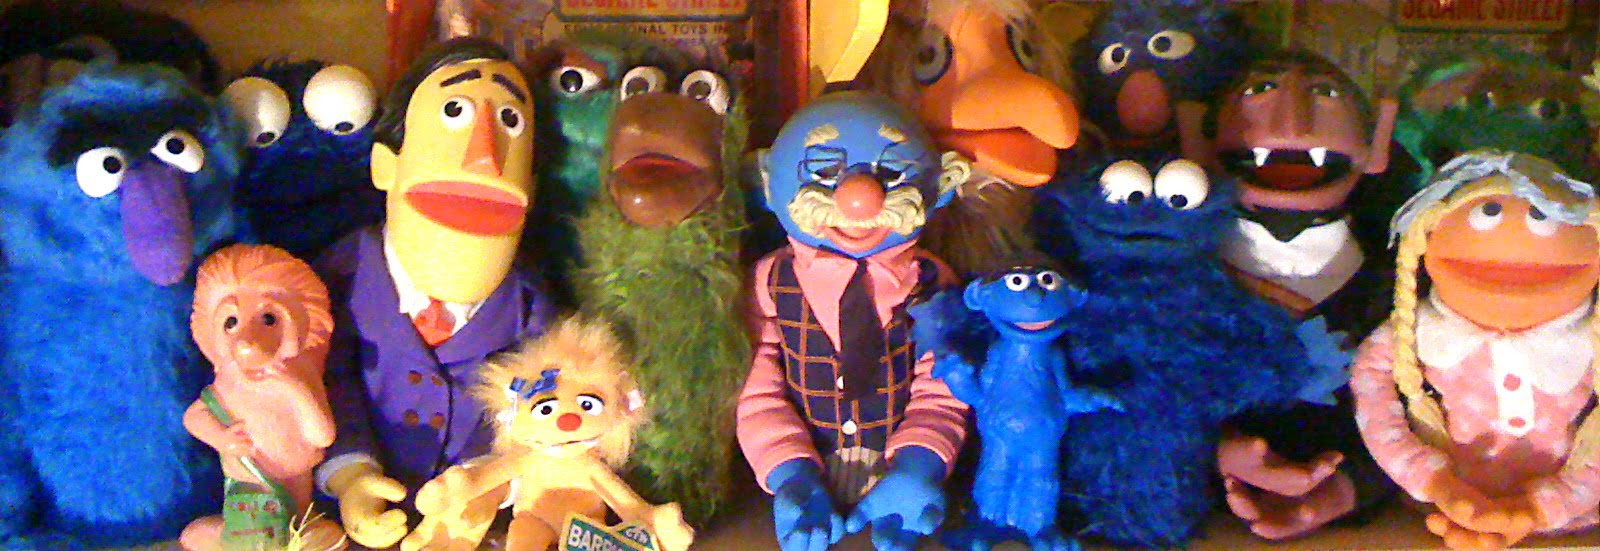 Vintage SESAME STREET Collectibles